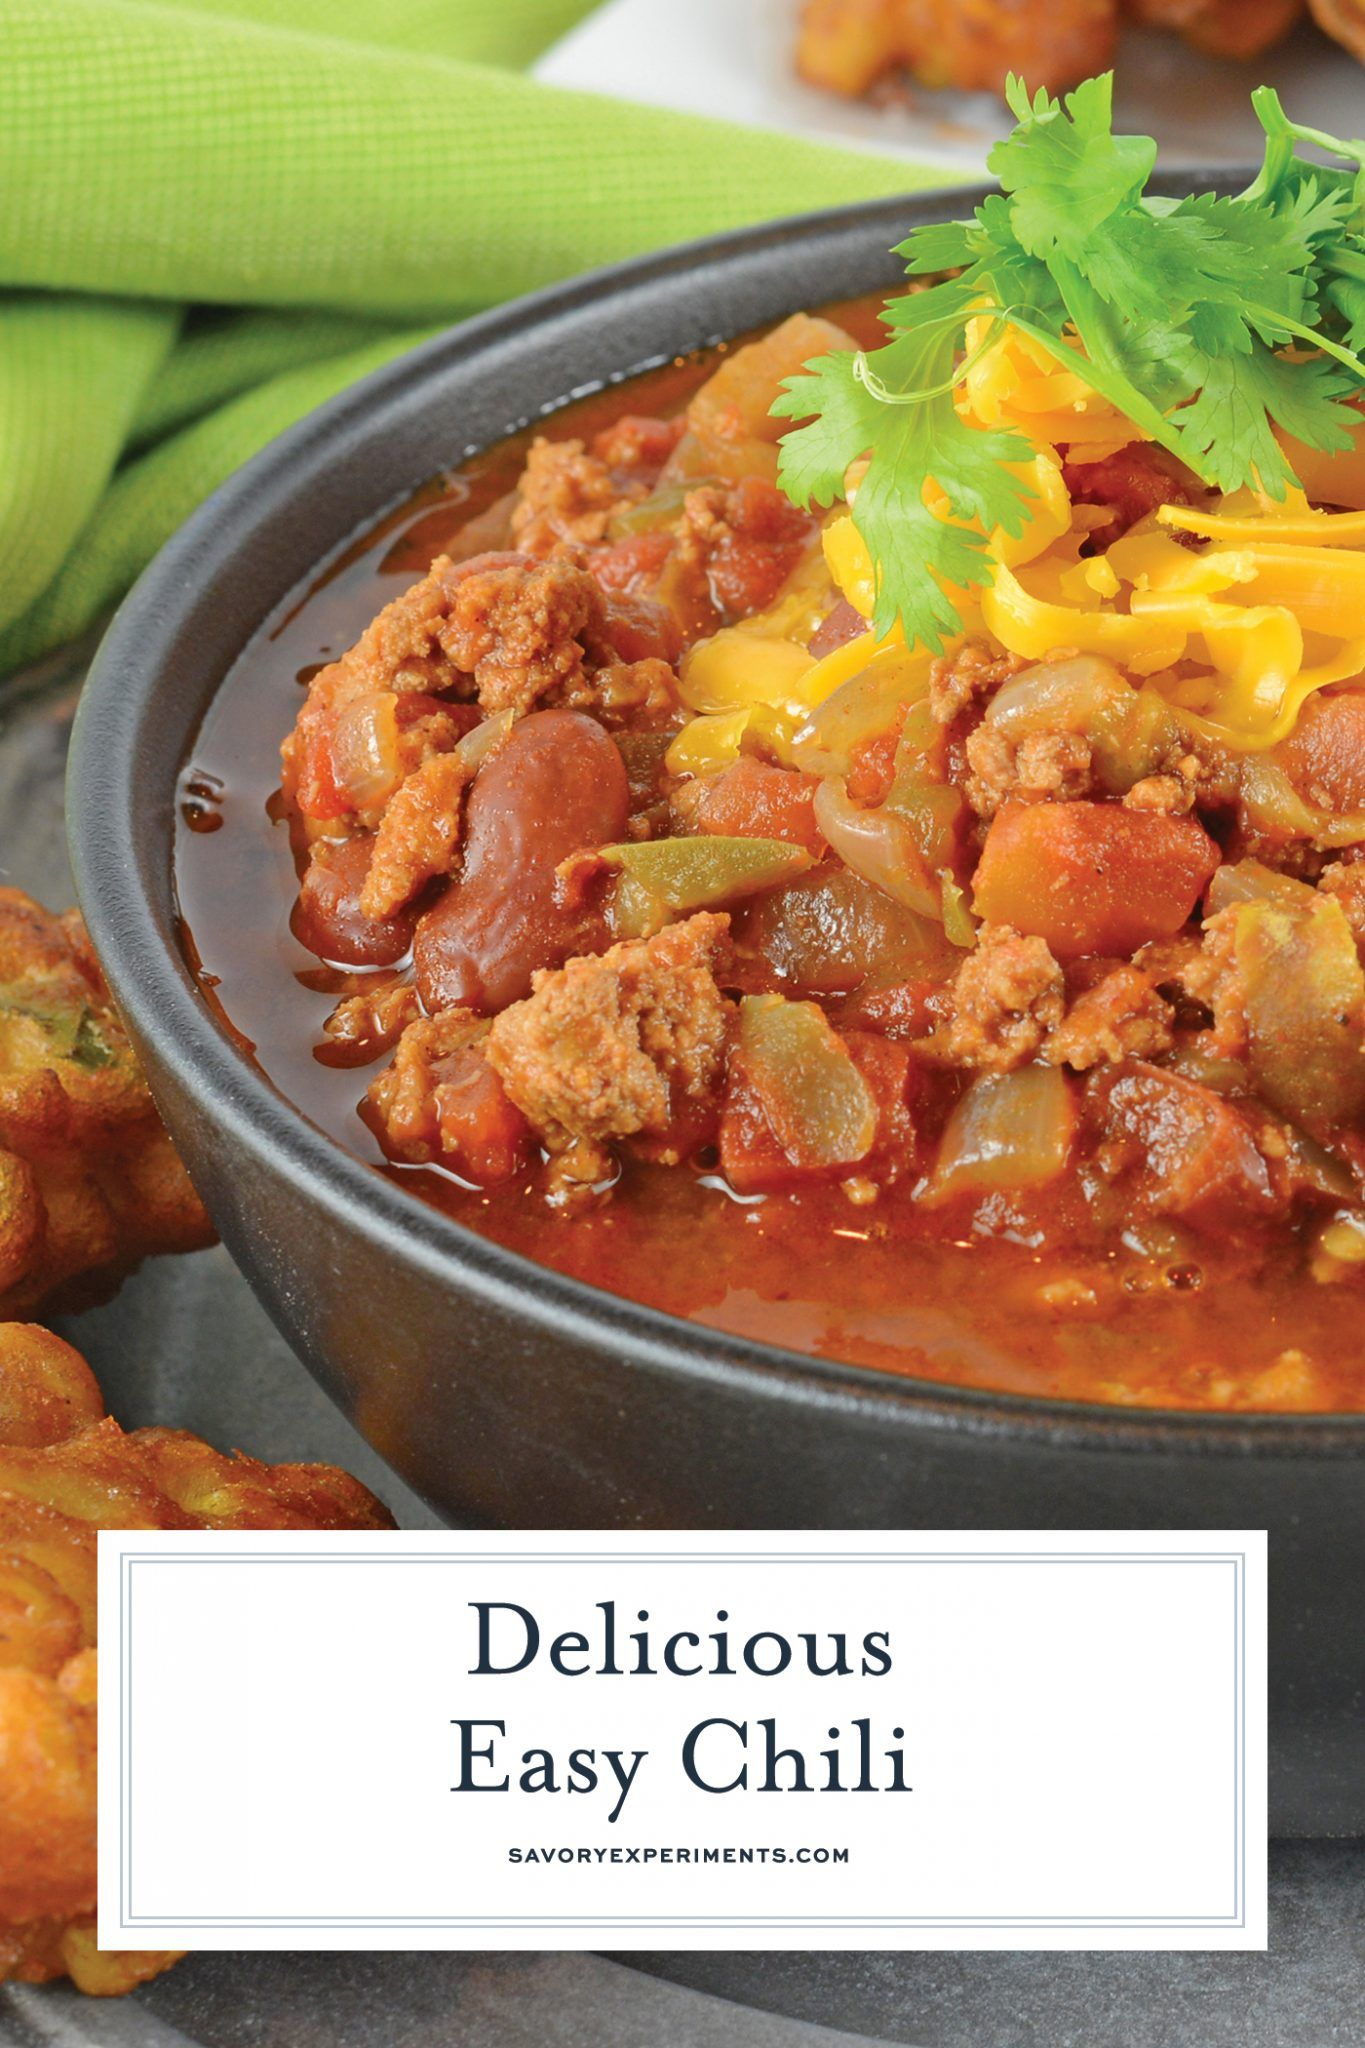 Easy Chili Is A Spicy Mix Full Of Ground Beef Italian Sausage And Vegetables But The Secret Ingredient Makes I Chili Recipe Easy Best Chili Recipe Easy Chili